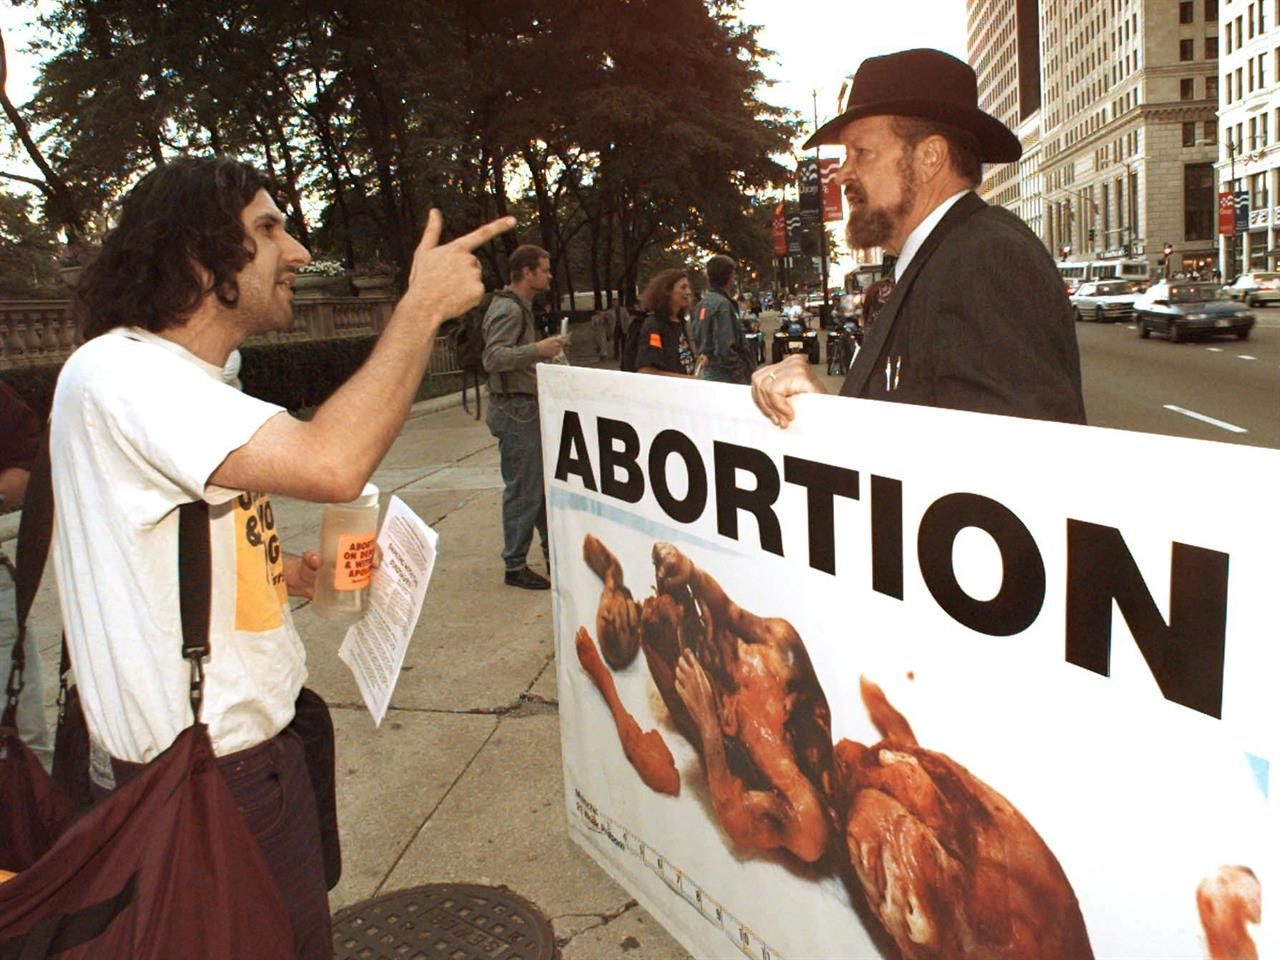 Abortion rights protestor Jay Lynn, left, argues with anti-abortion advocate Joseph Scheidler as he carries a sign along Michigan Ave. in Chicago, Friday, Aug. 23, 1996. Joe Scheidler, the founder of the Pro-Life Action League and prominent figure in the anti-abortion movement, died Monday, Jan. 18, 2021 the organization announced. He was 93. (AP Photo/John Gaps III, file)